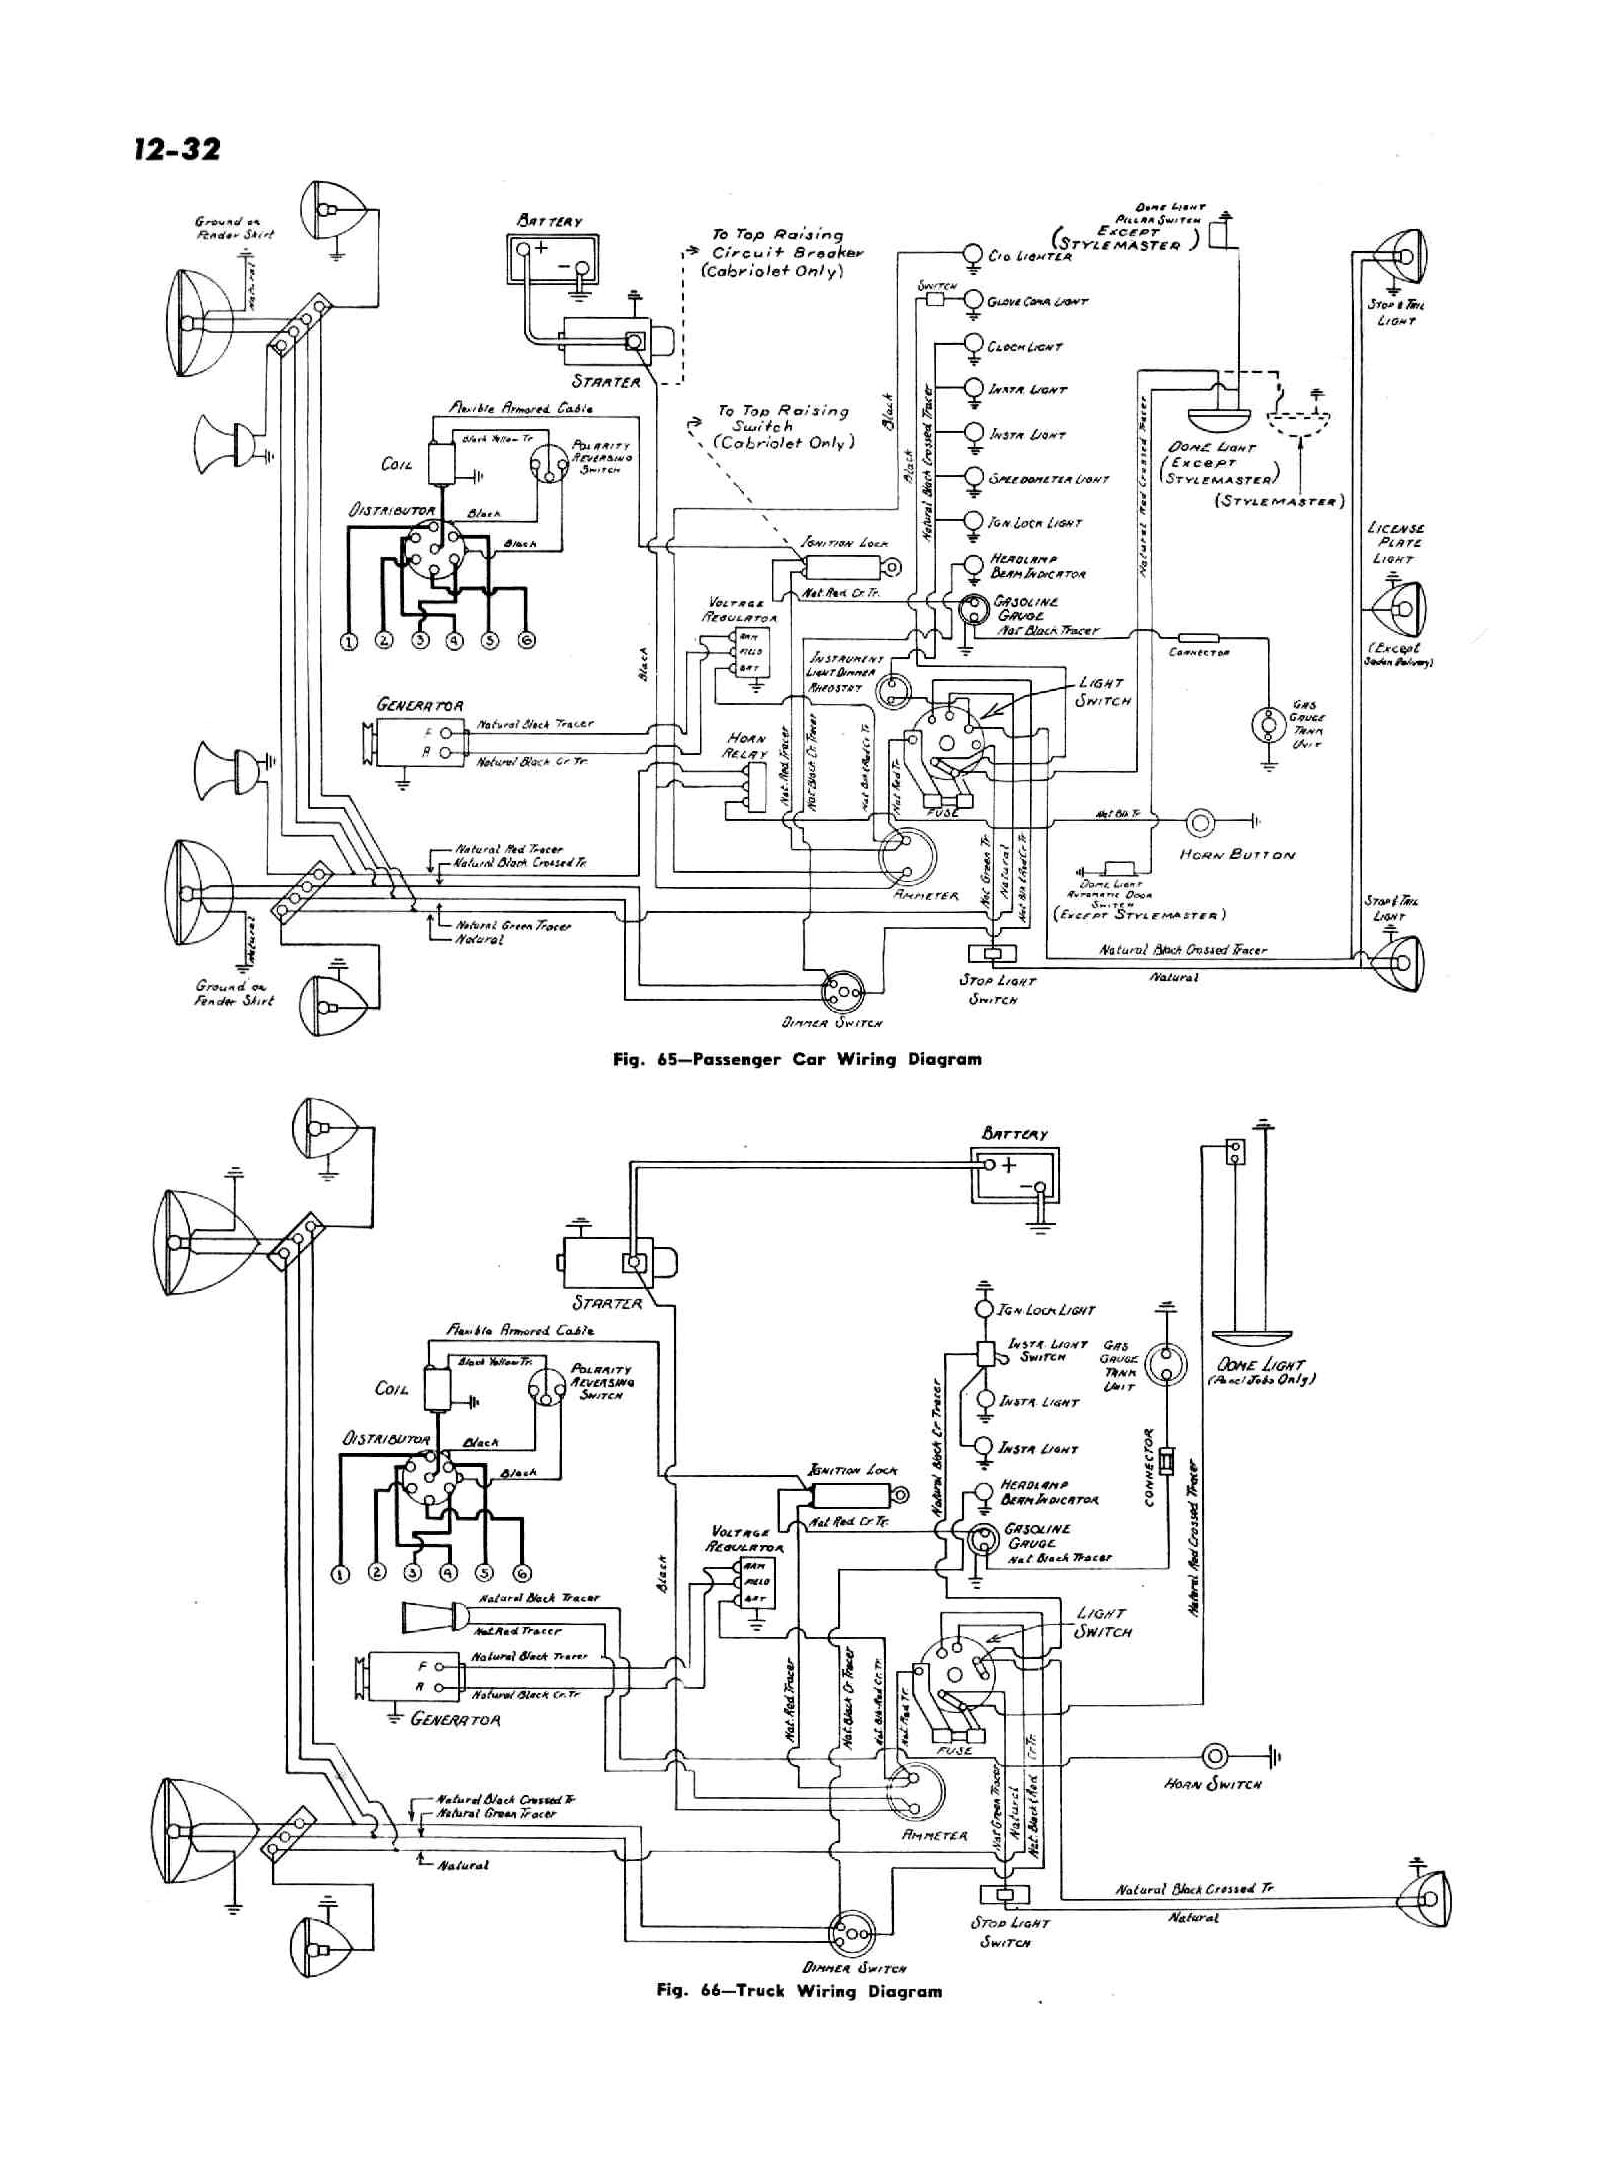 Chevy Wiring Diagrams Ford F 450 Wiring Diagrams 1947 Chevy Wiring Diagram